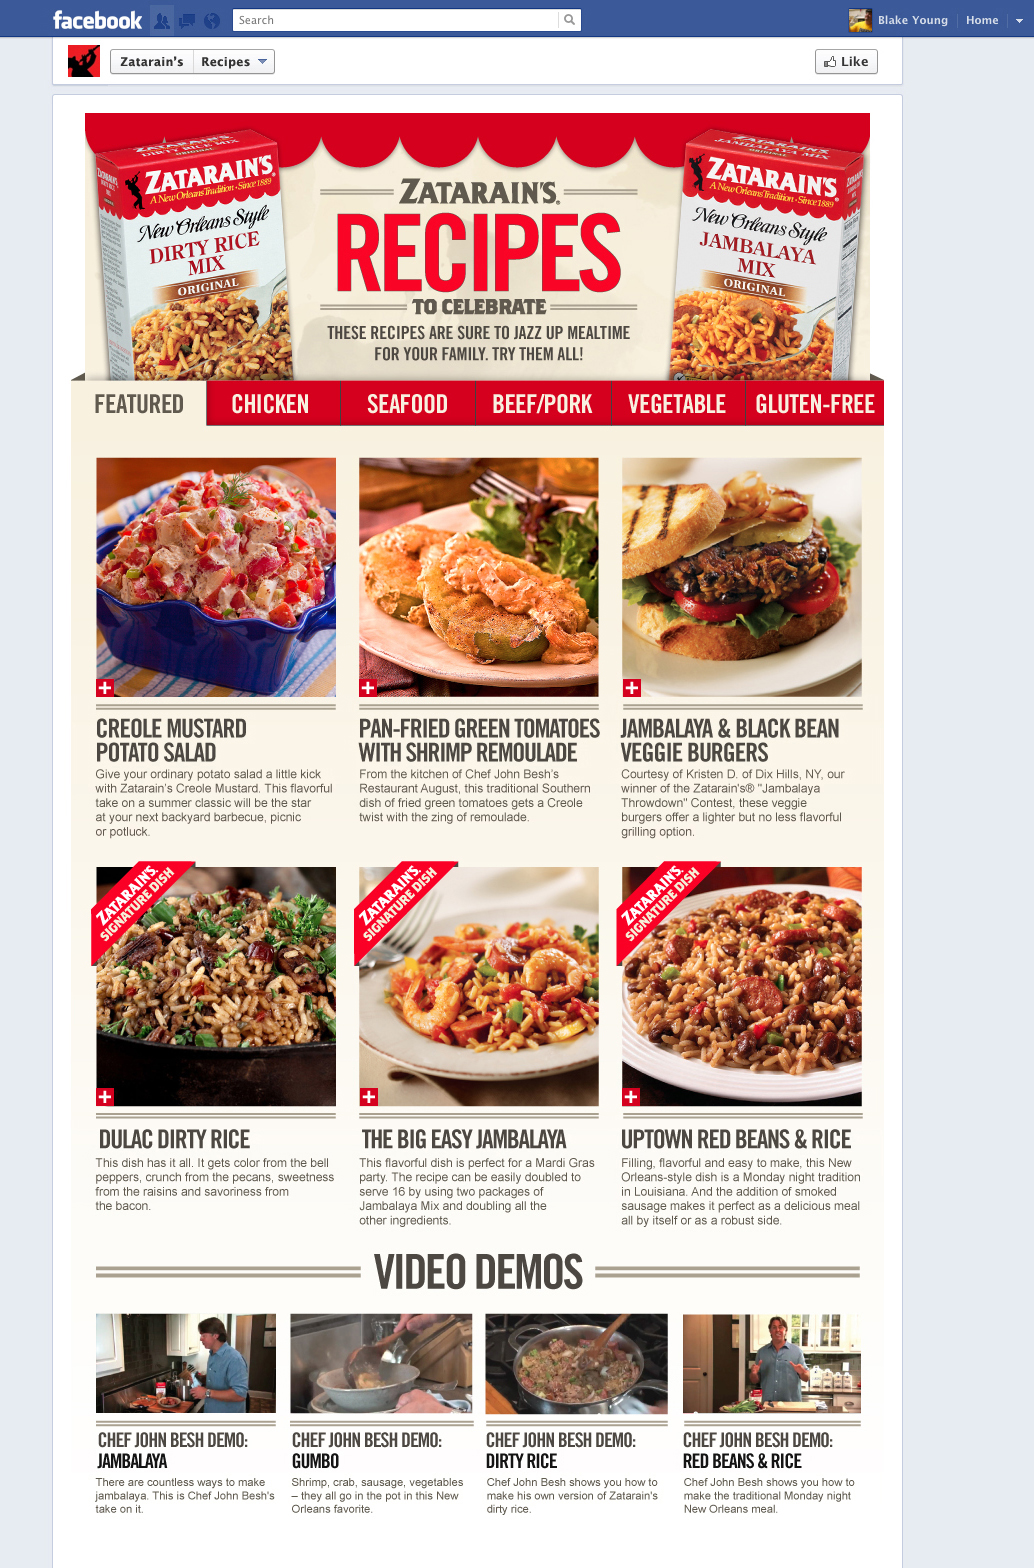 Zatarains facebook apps my name is blake young recipes app forumfinder Choice Image